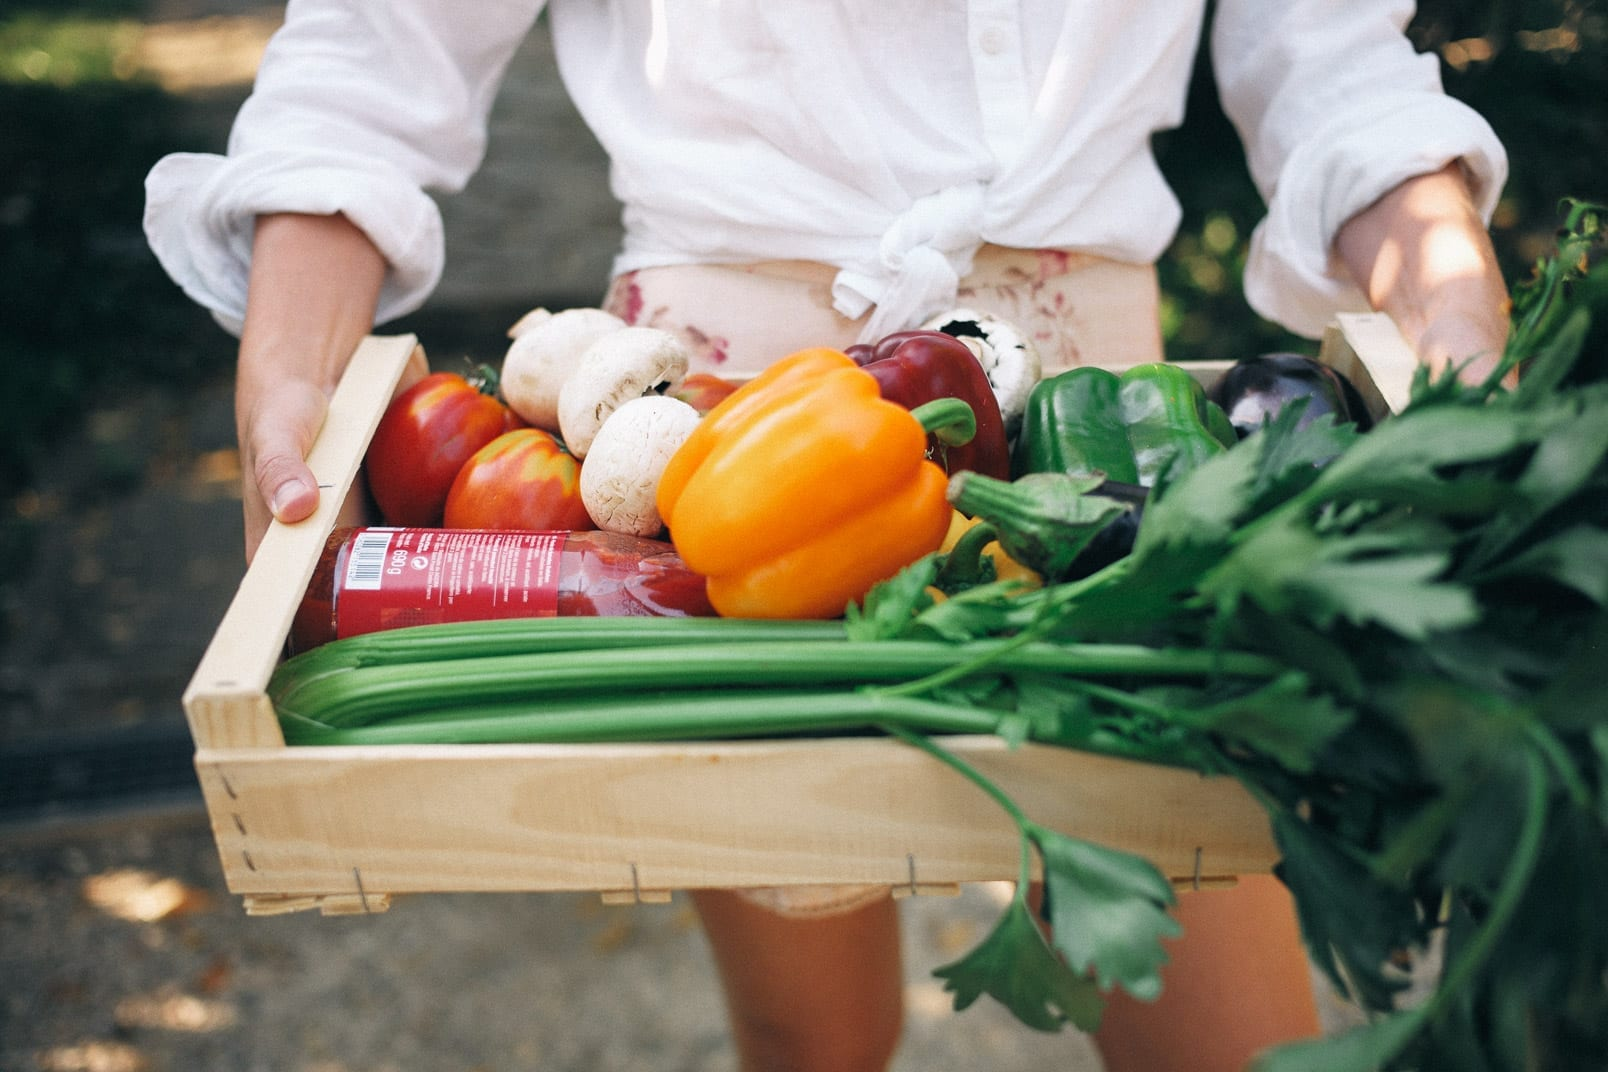 Habits to bring home - Local fresh produce